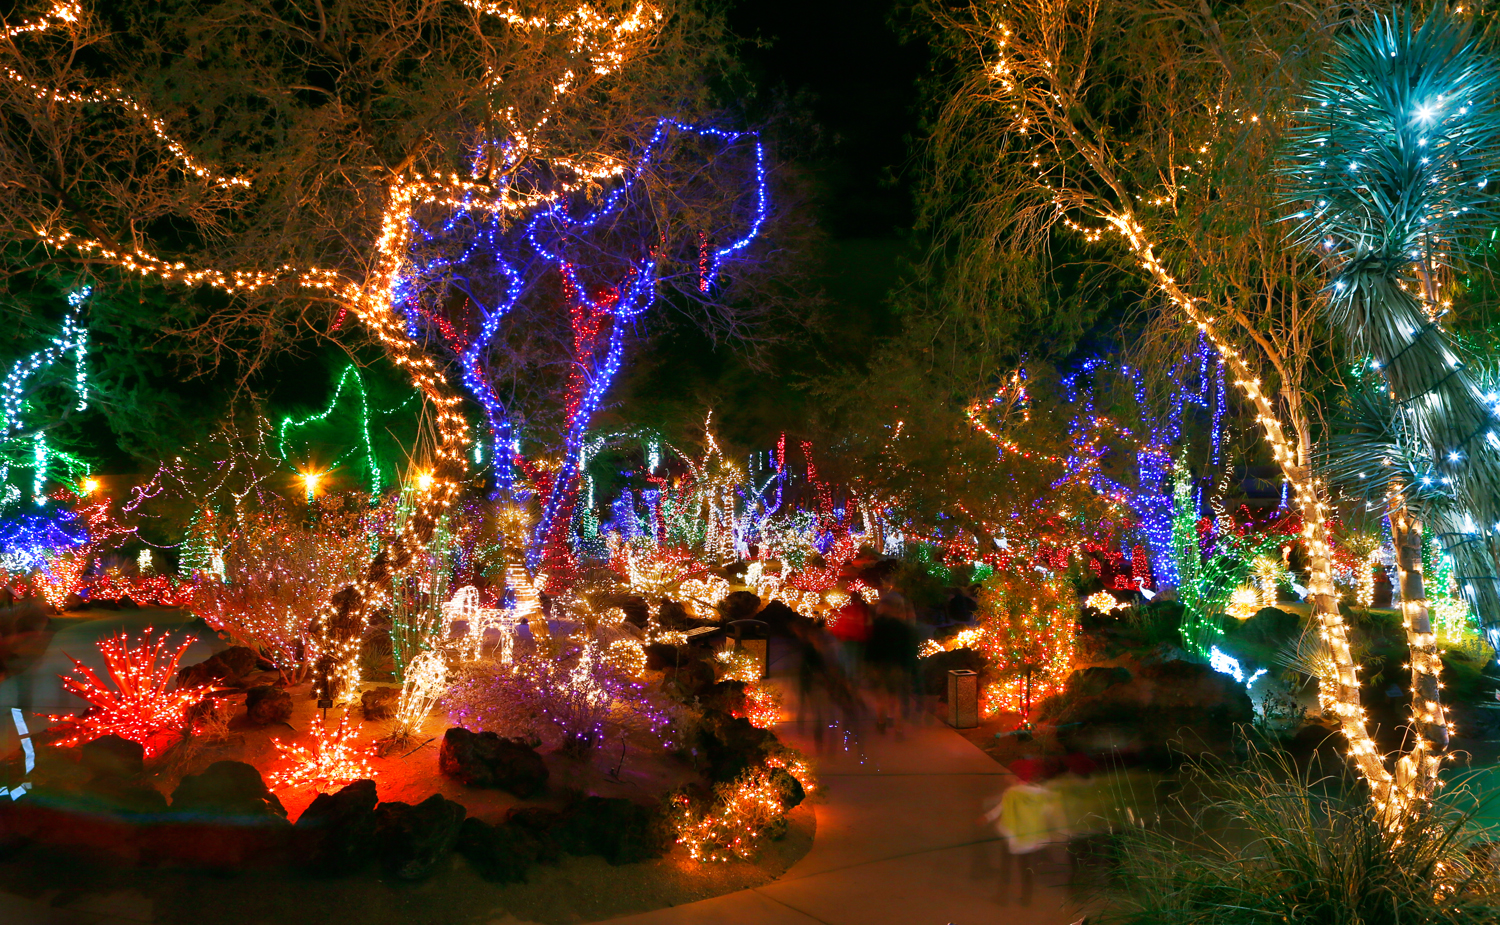 The Cactus Garden at the Ethel M® Chocolate Factory is lit with holiday lights on Wednesday, November 19, 2014. L.E. Baskow